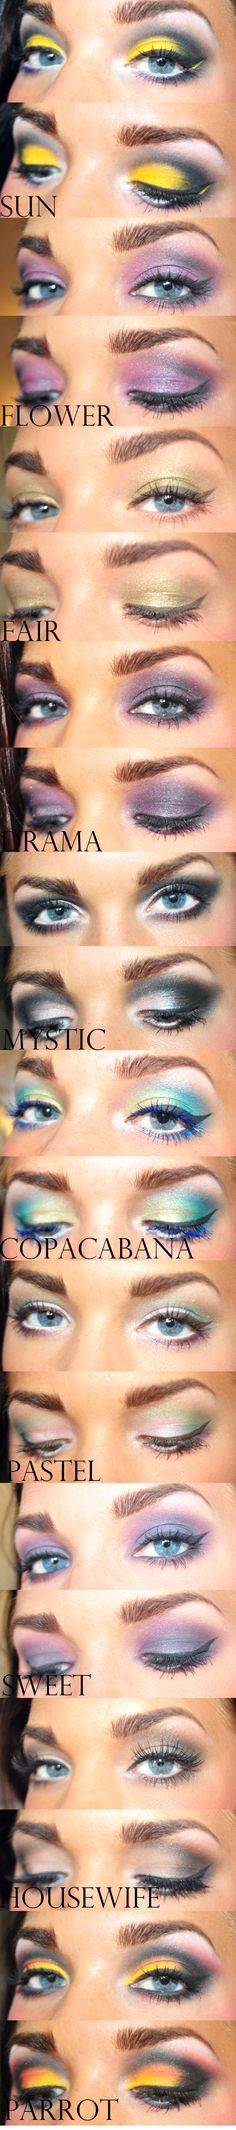 all kinds of looks for blue eyes!